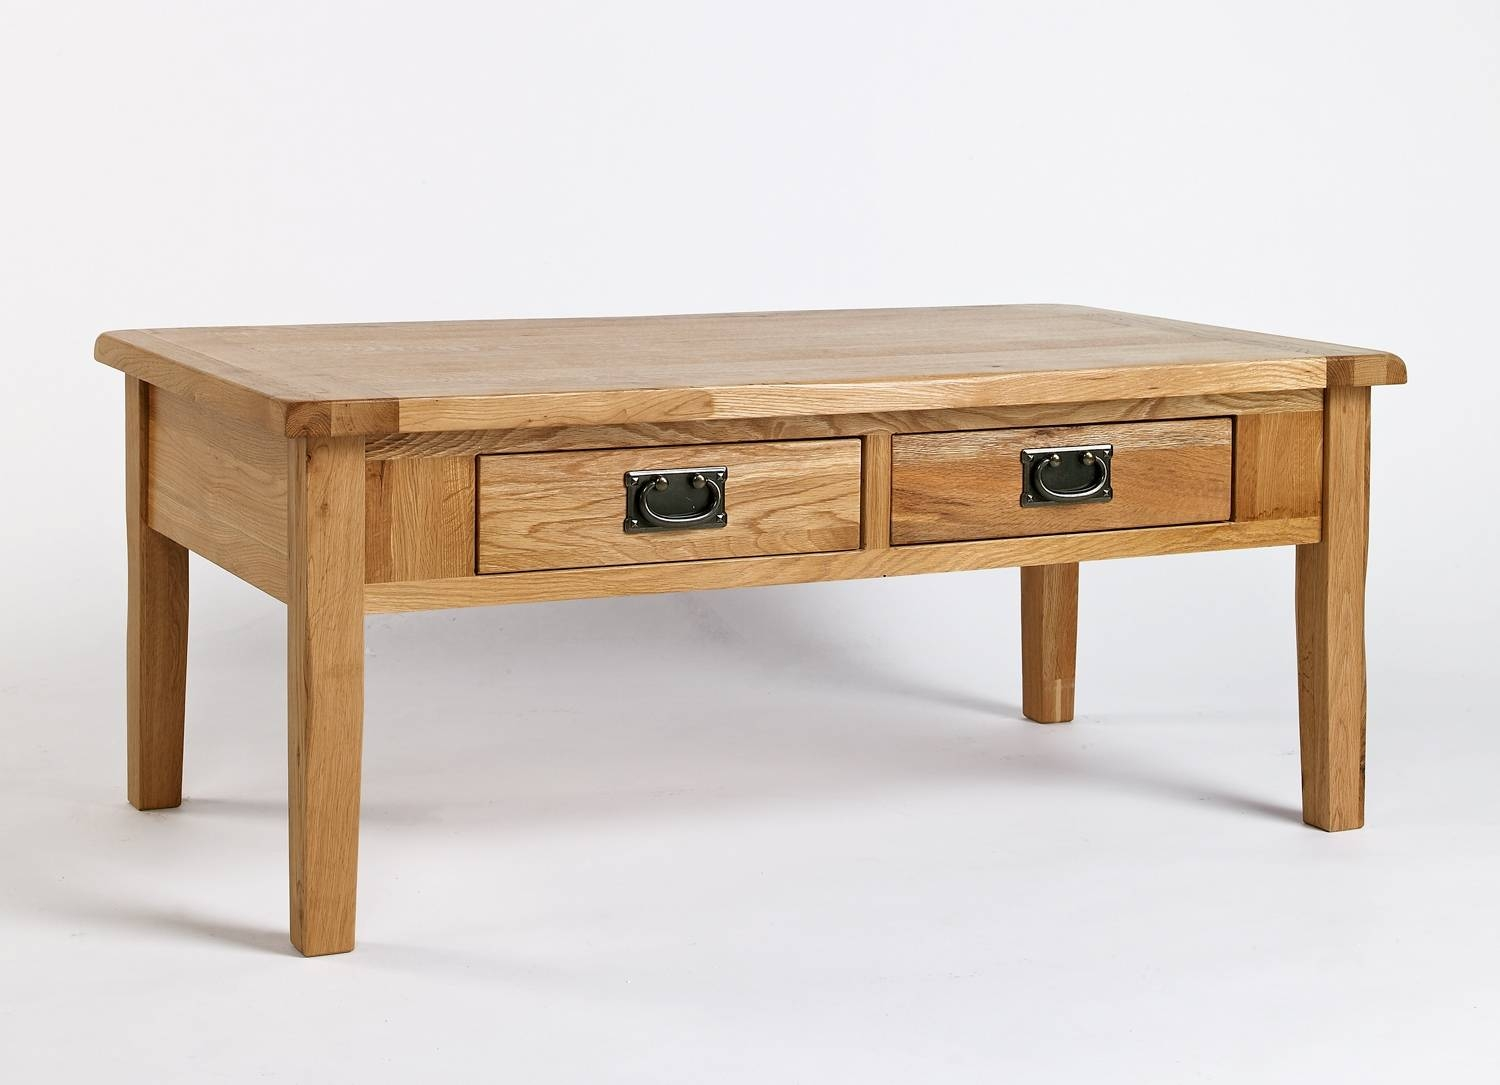 Oak Coffee Table With Drawers Uk | Coffee Tables Decoration Throughout Large Low Oak Coffee Tables (View 6 of 30)